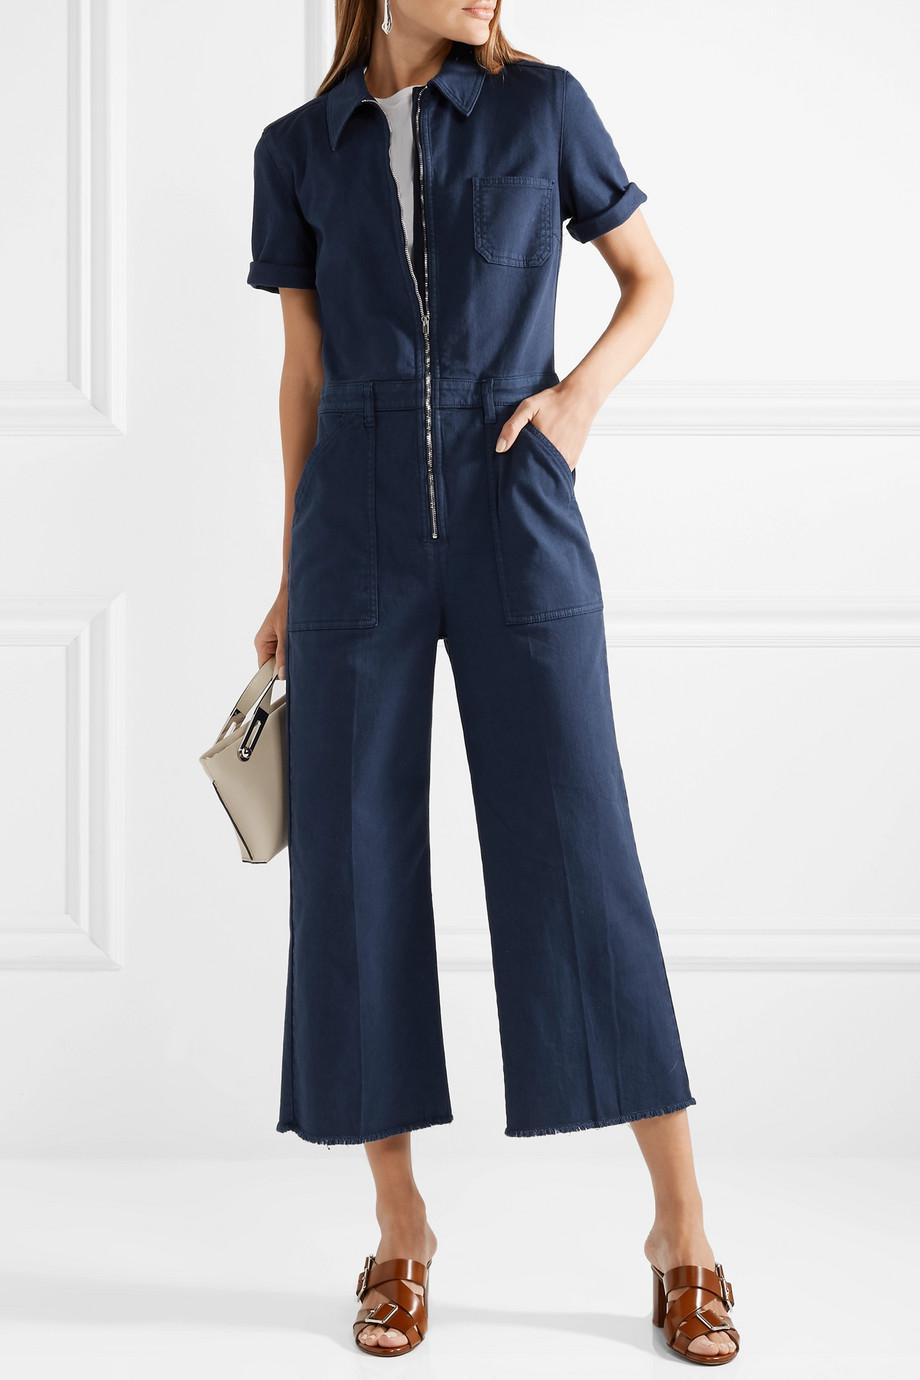 979827dbd52 Lyst - Stella McCartney Cropped Cotton-blend Twill Jumpsuit in Blue